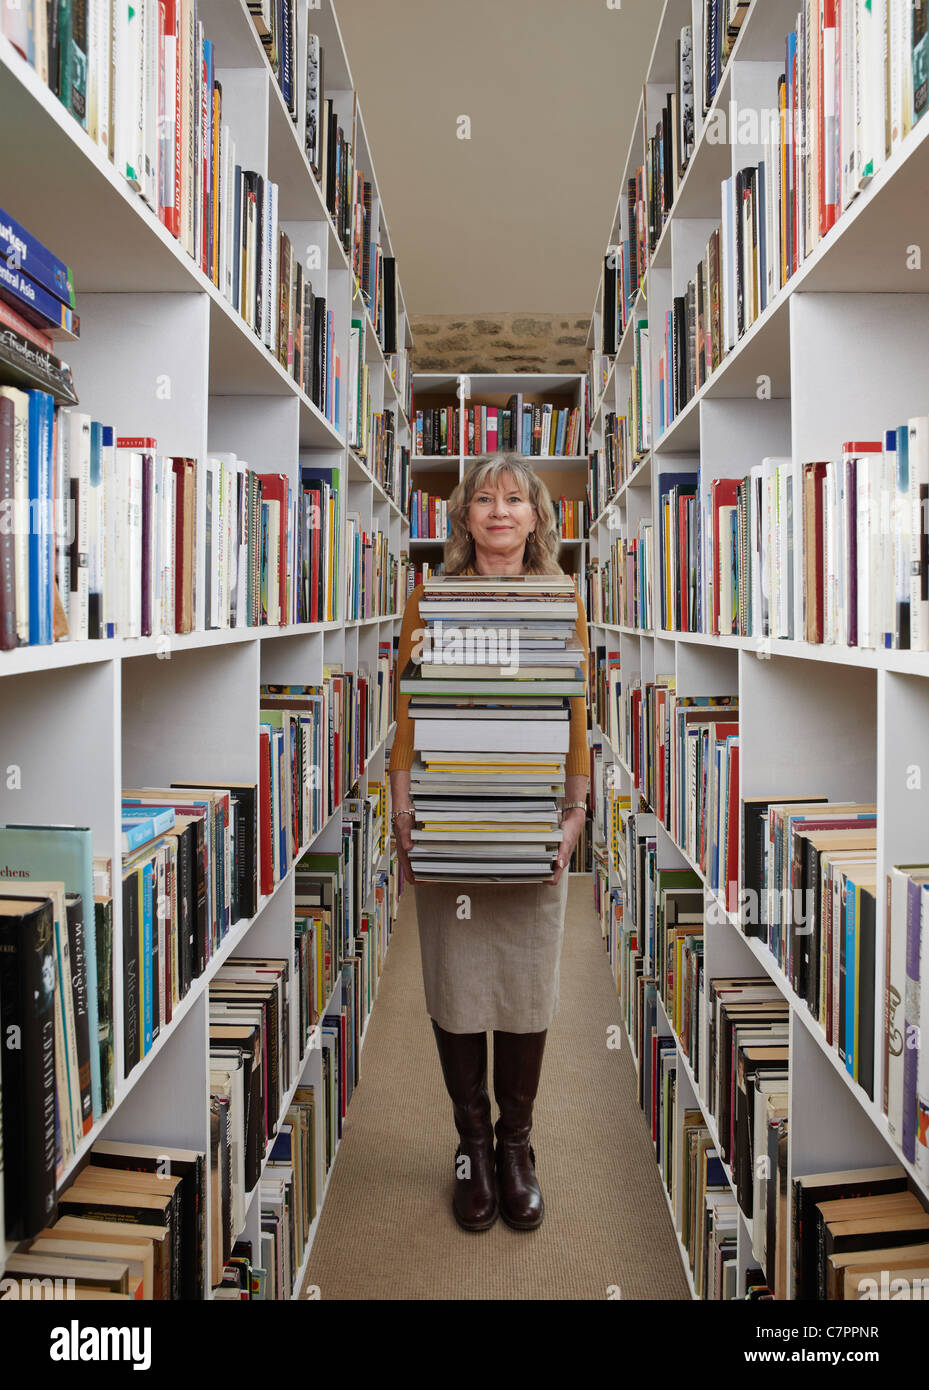 Older woman carrying books in library - Stock Image